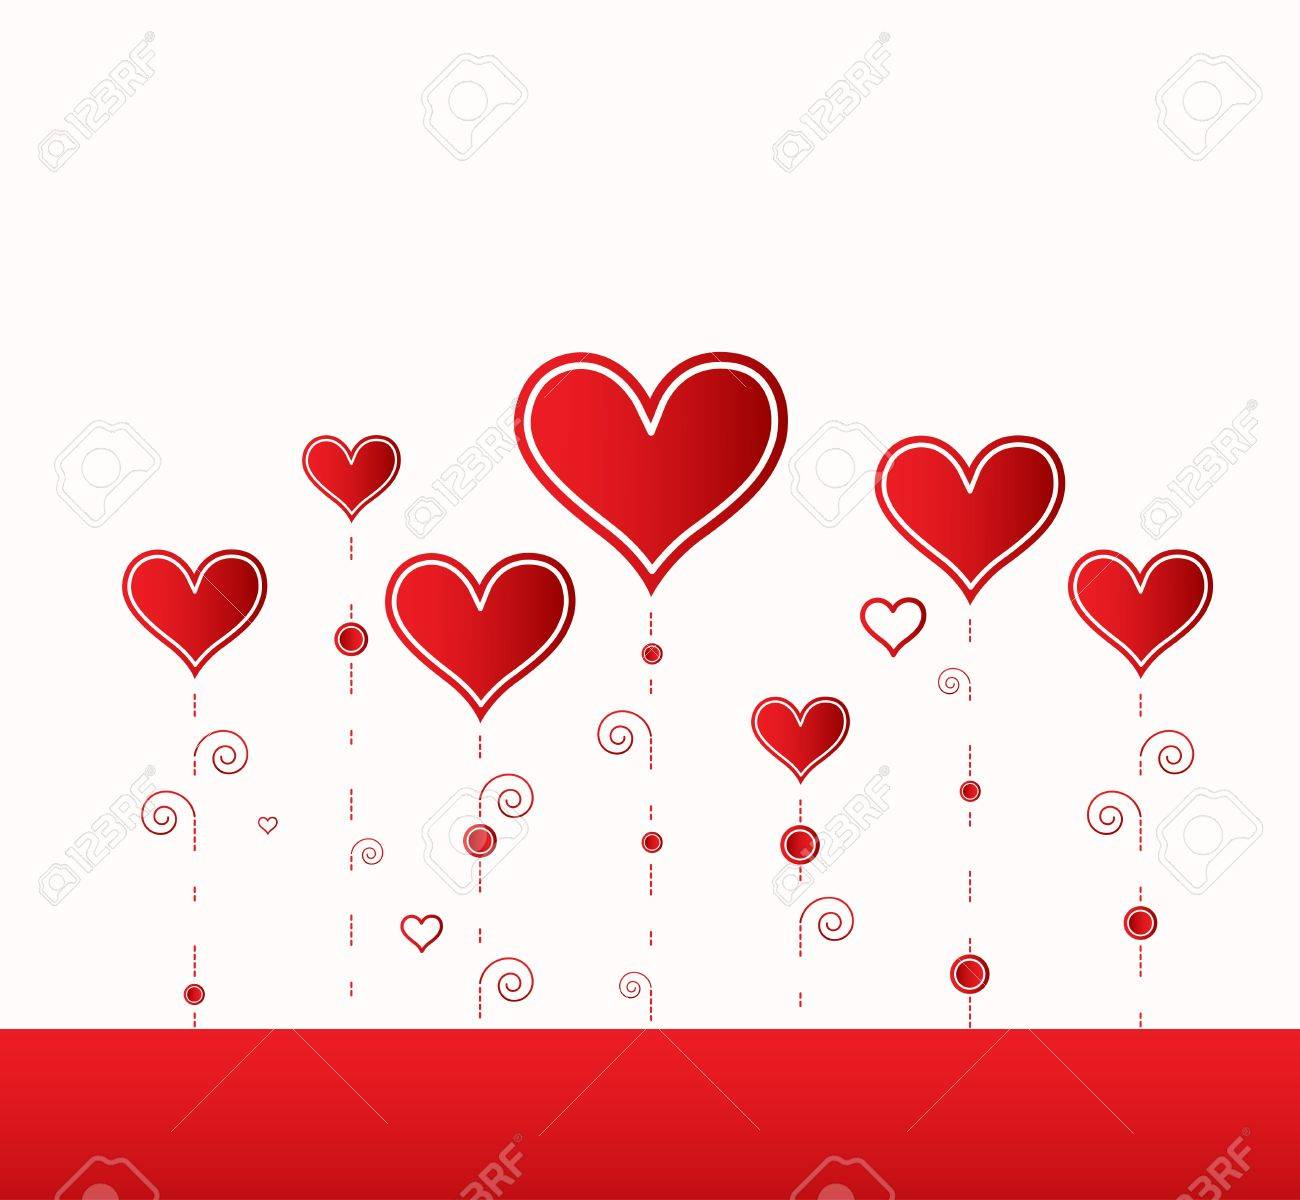 Love background with hearts valentine day card Stock Vector - 17749343